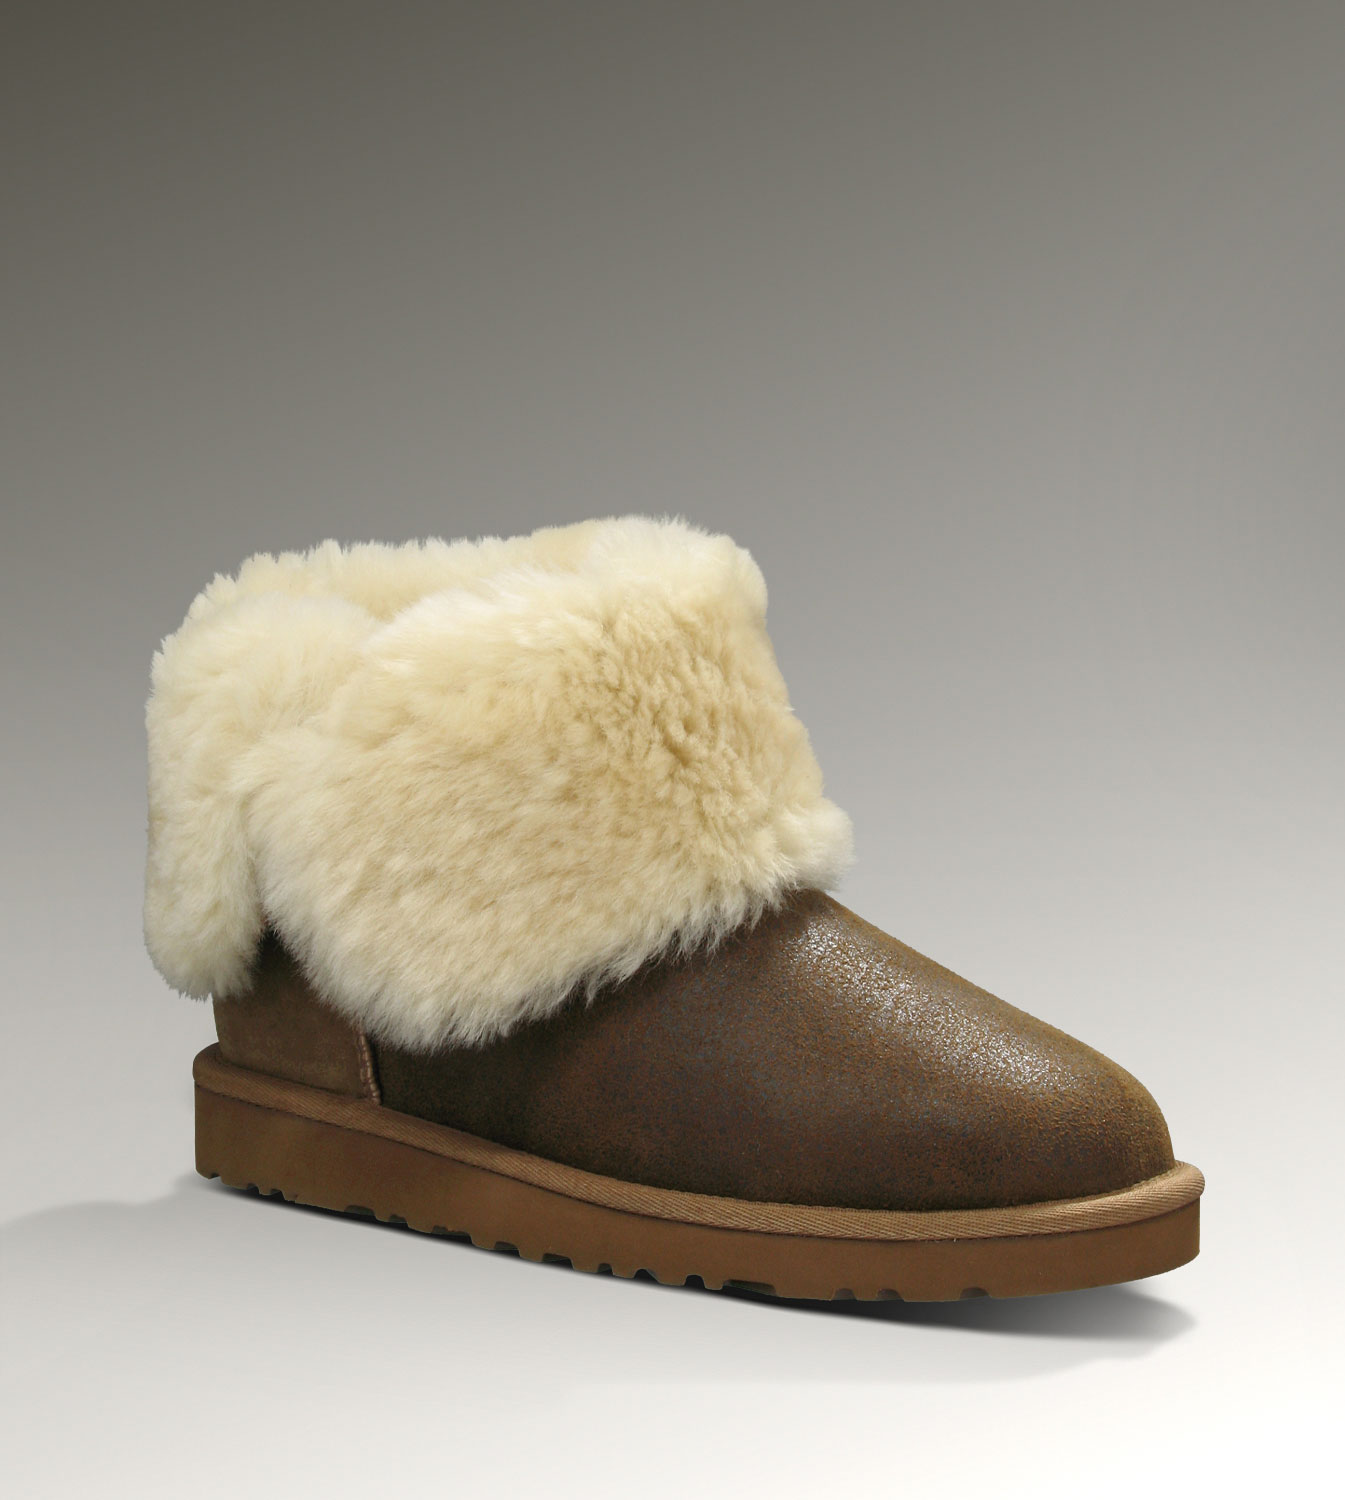 UGG Bailey Button Bomber 5838 Jacket Chestnut Boots